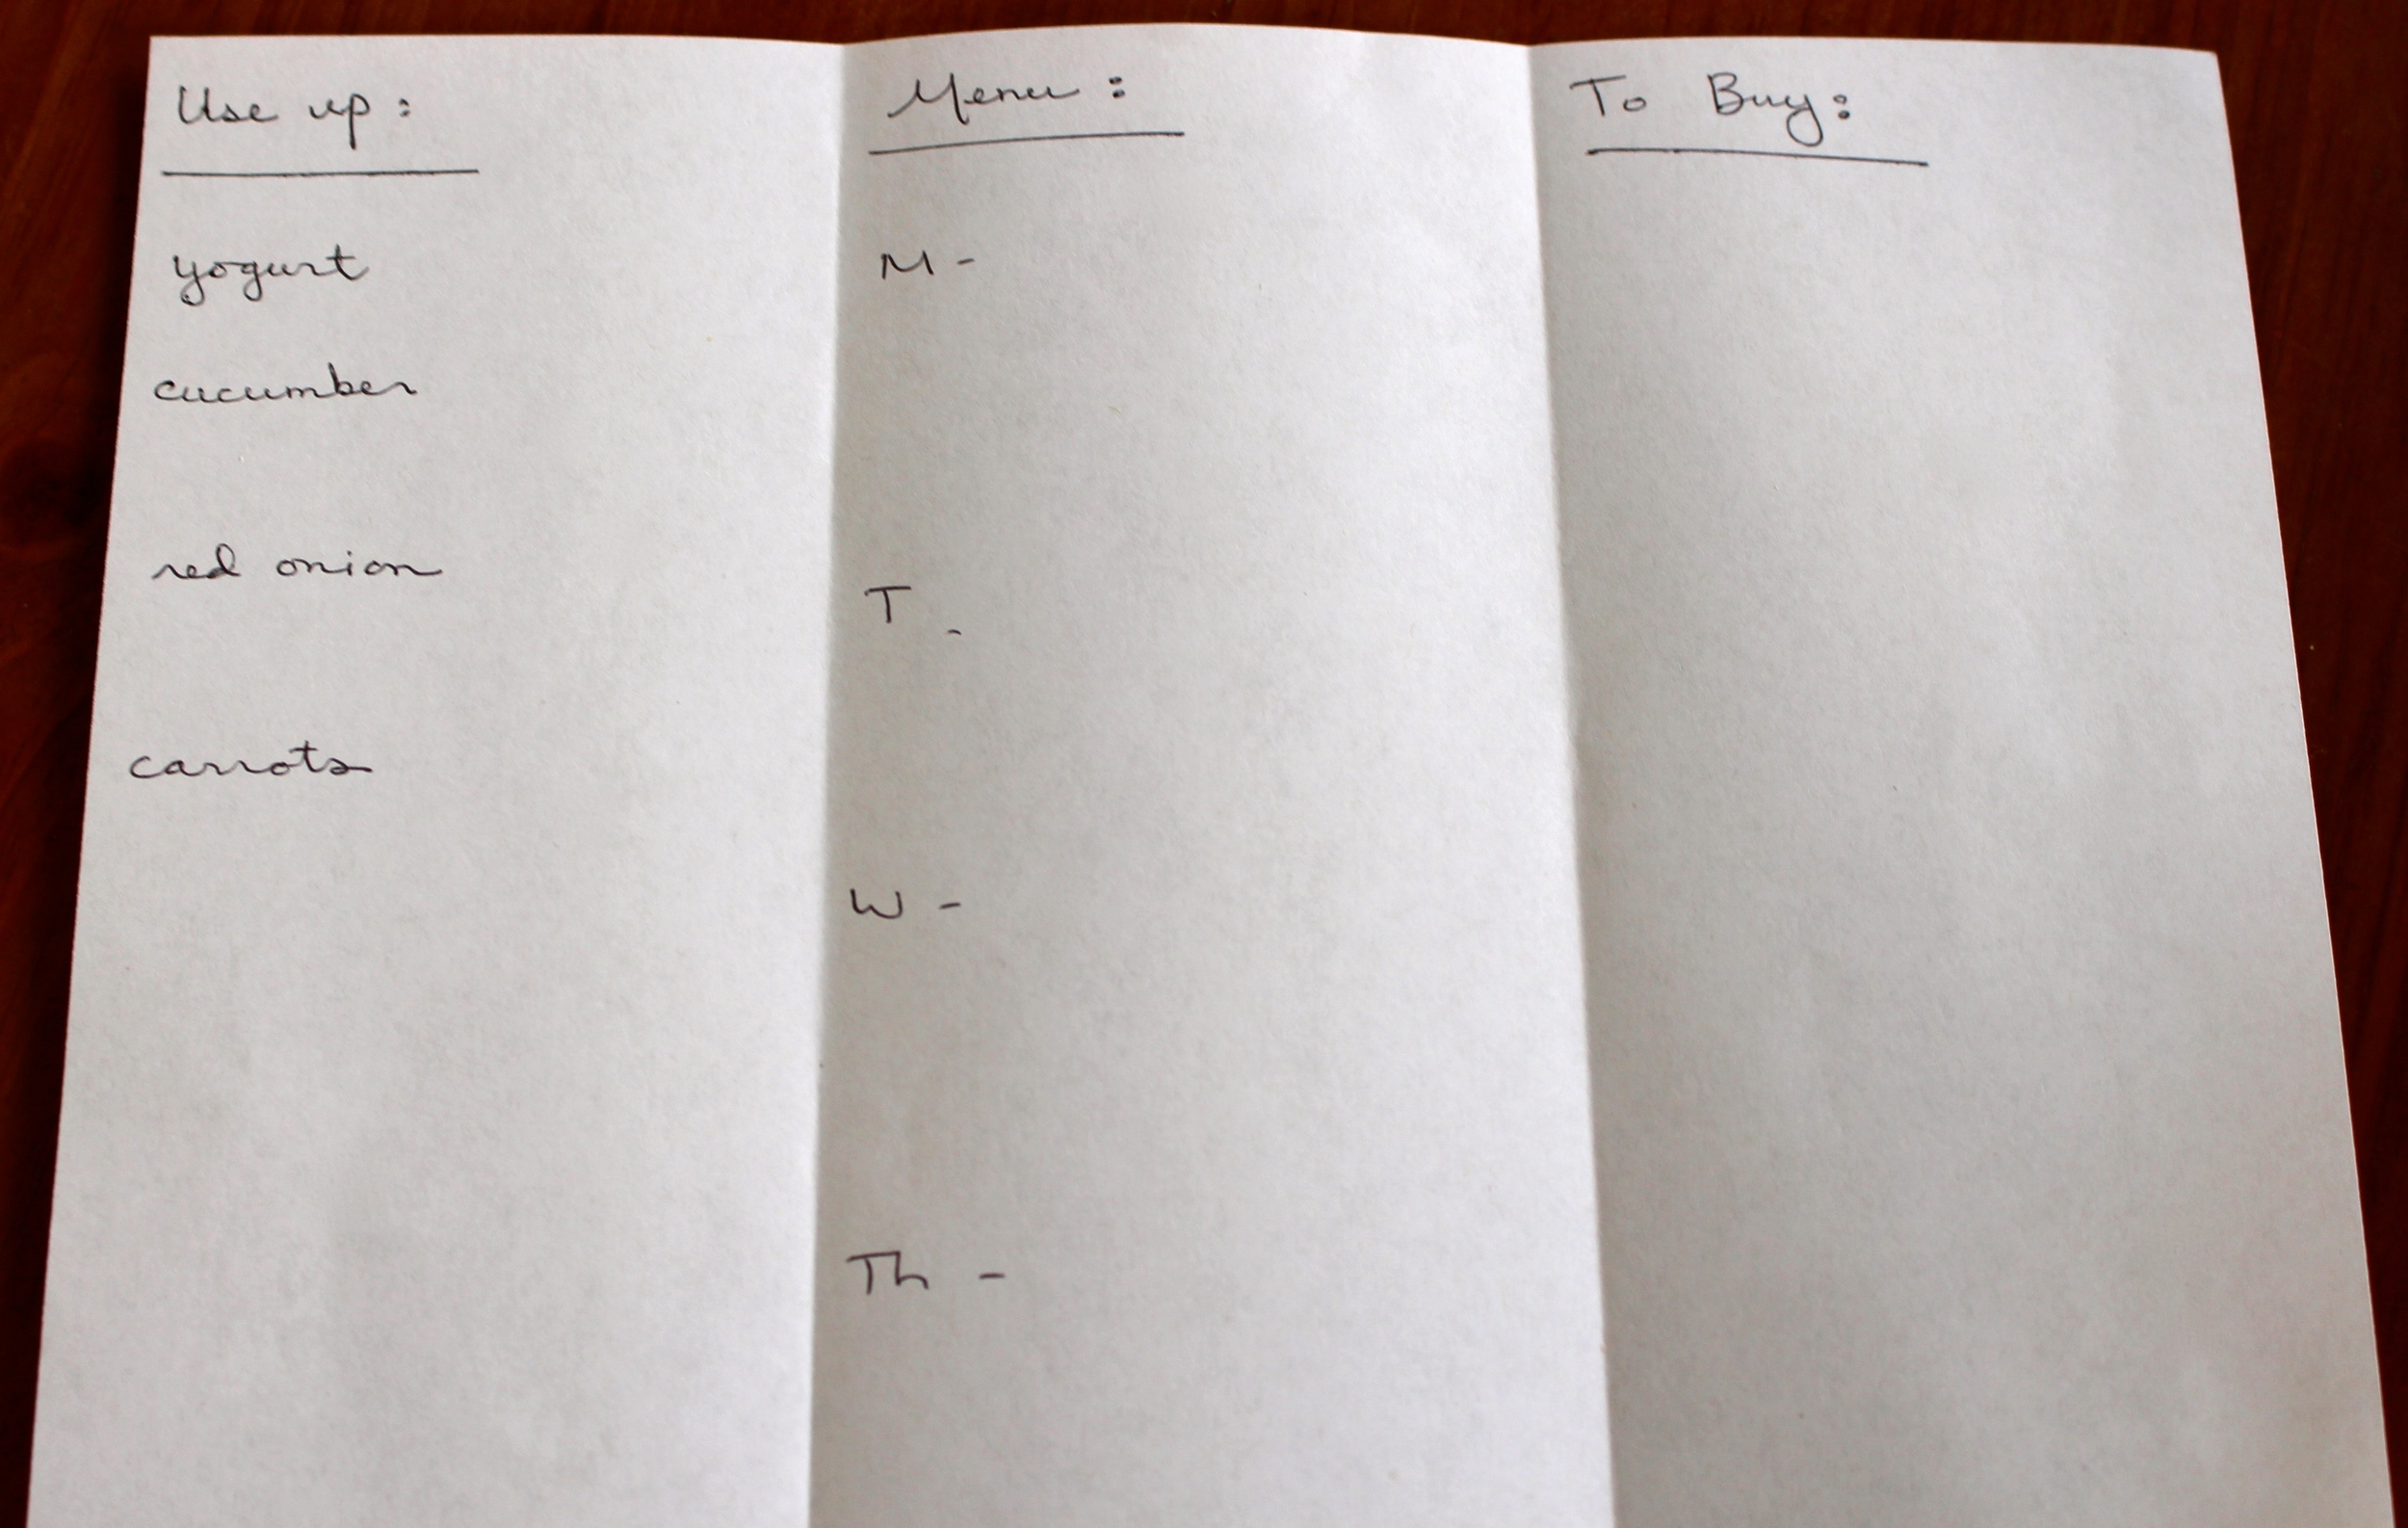 A sample menu planning page (I'm already starting step two here)